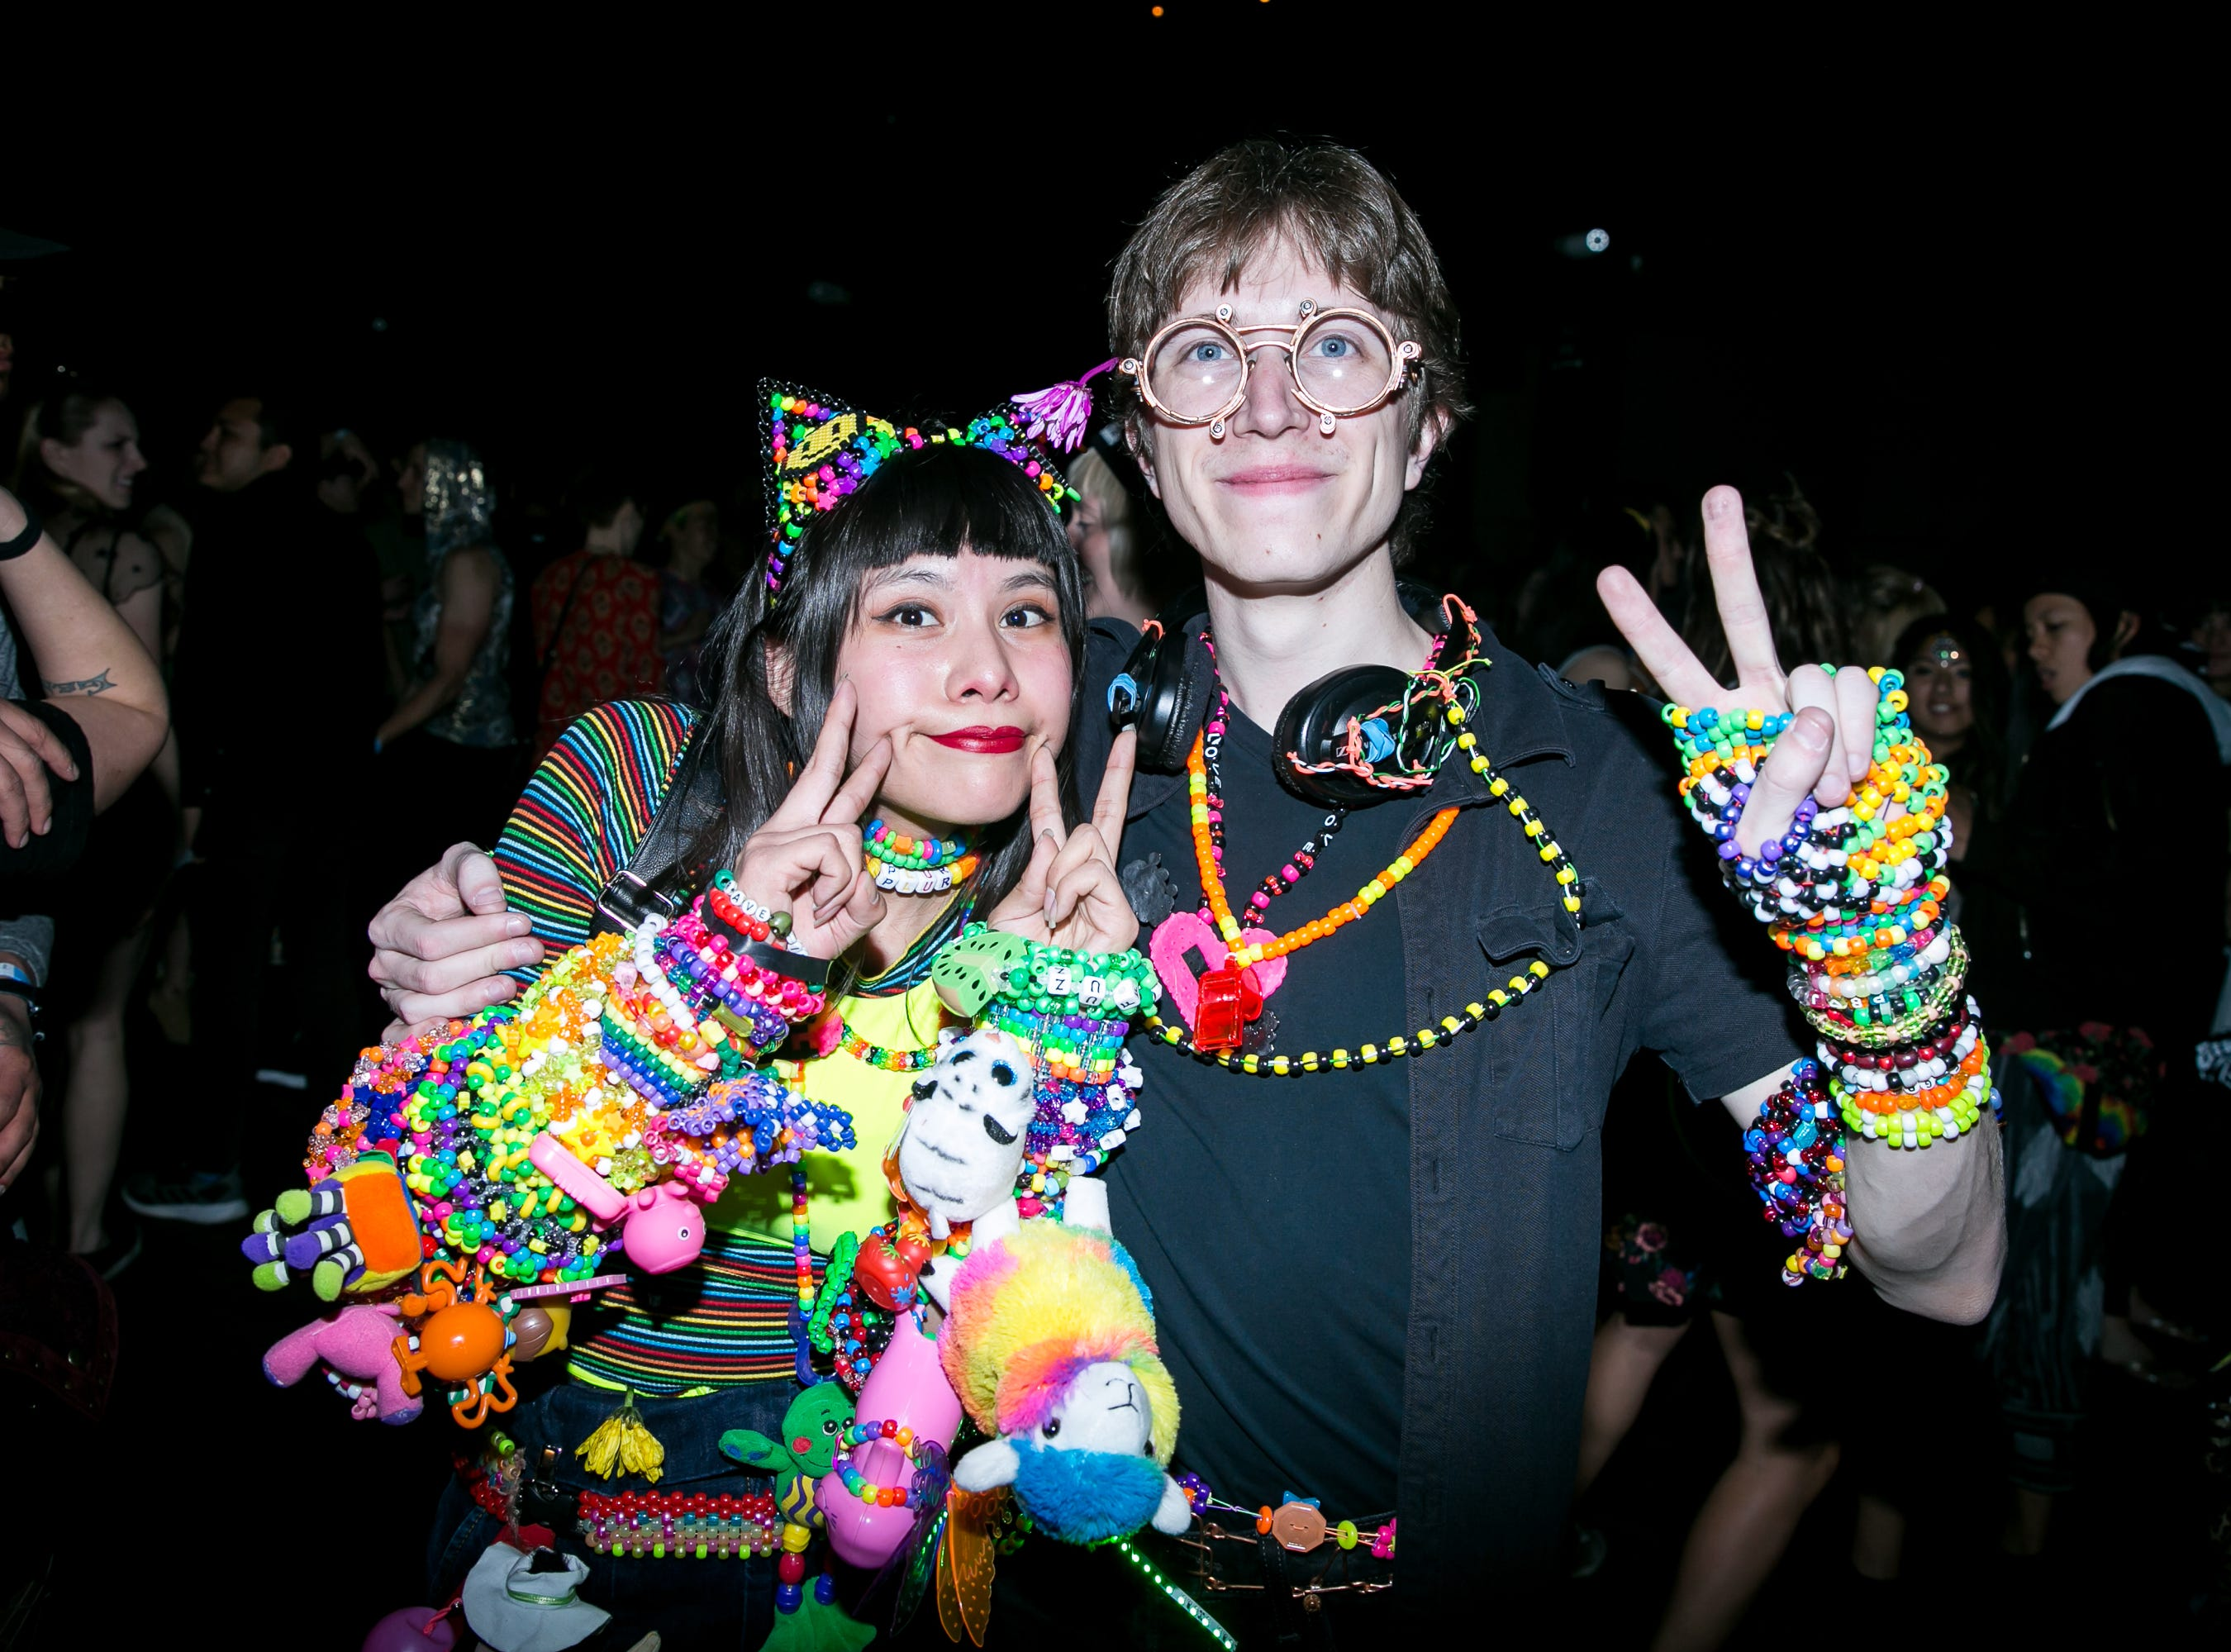 These two were decked out at the Full Moon Festival at the Pressroom on March 23, 2019.